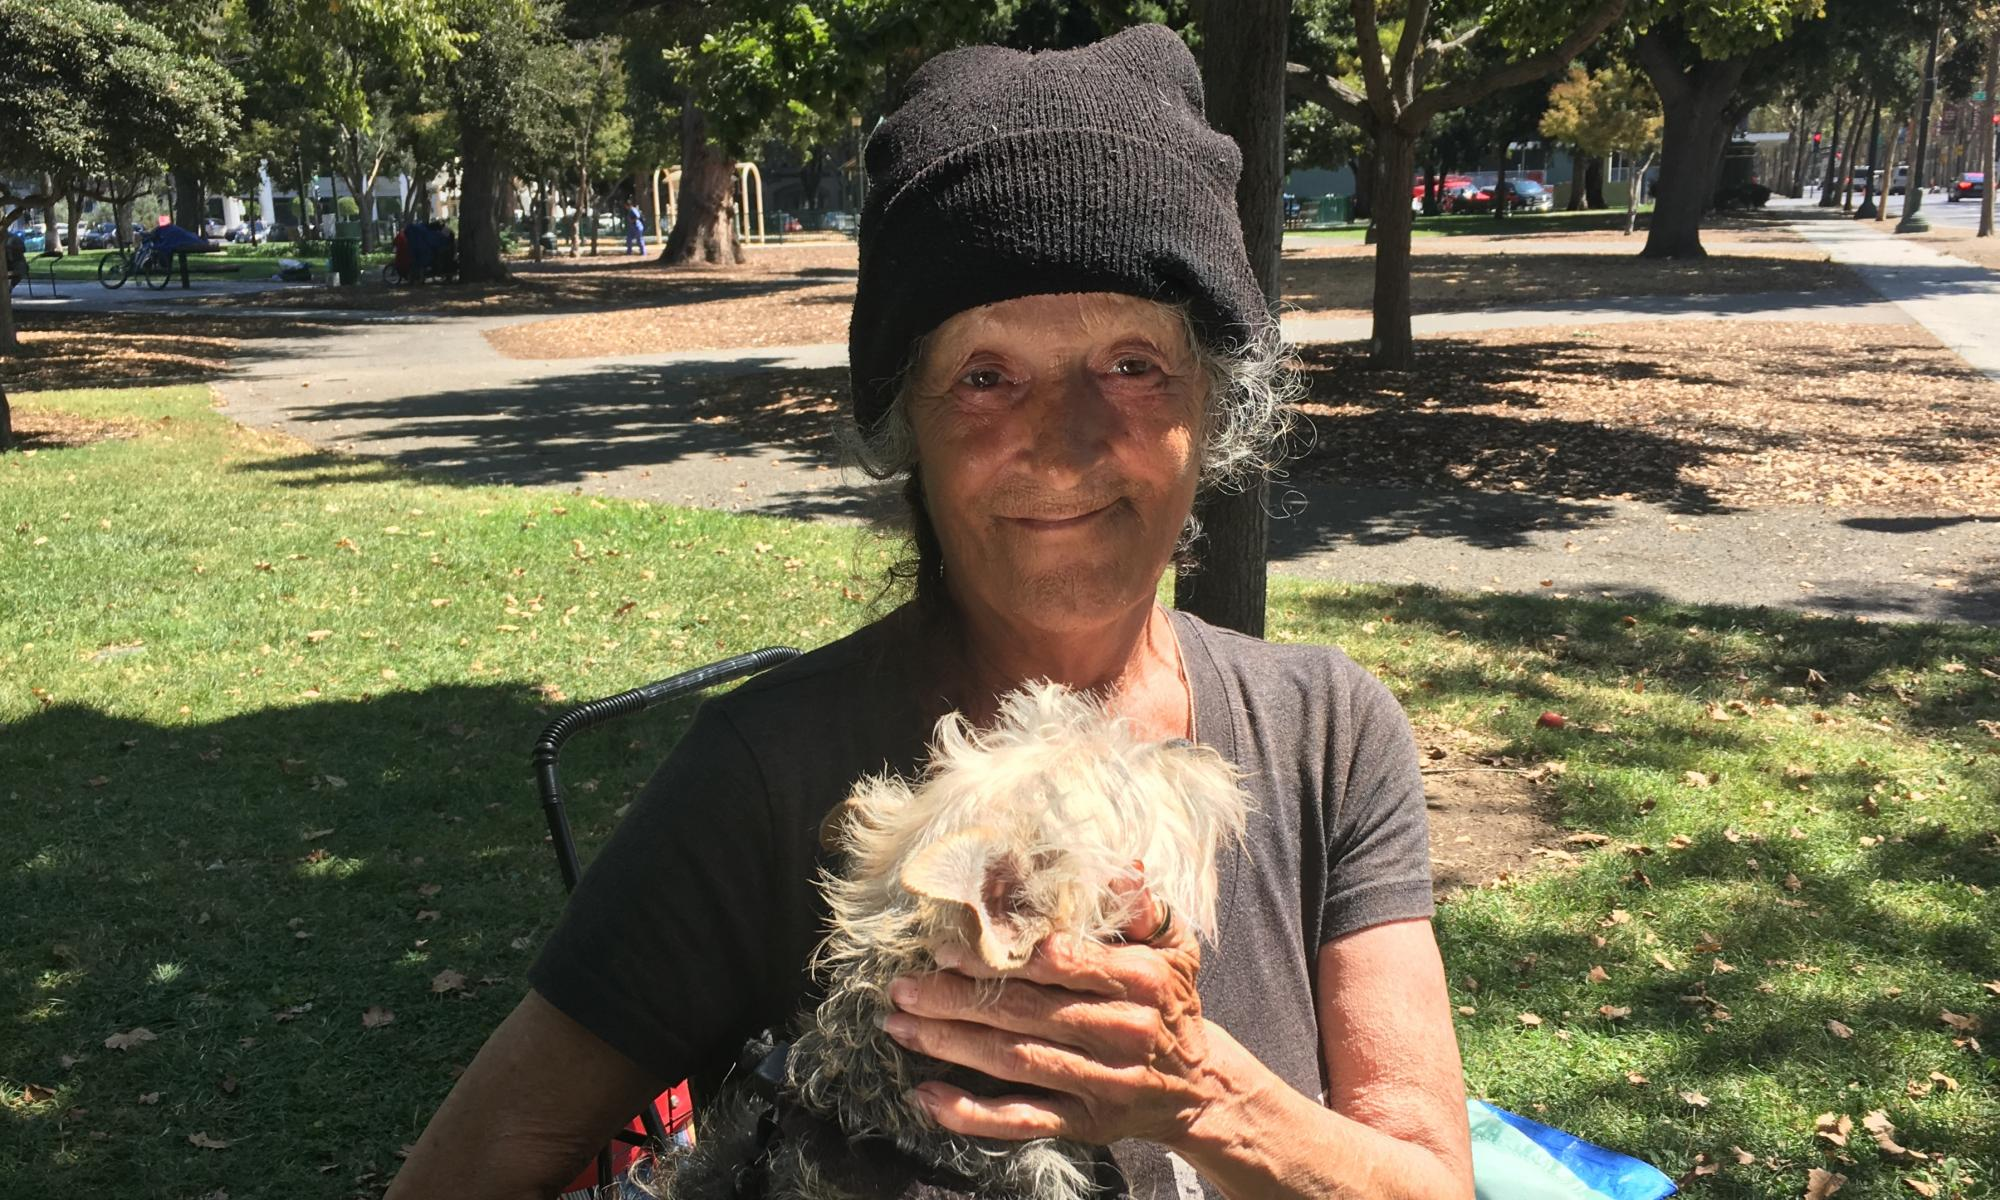 A homeless woman named Chata in San Jose. She said she would be 'the first one to sign up' for a tiny home.